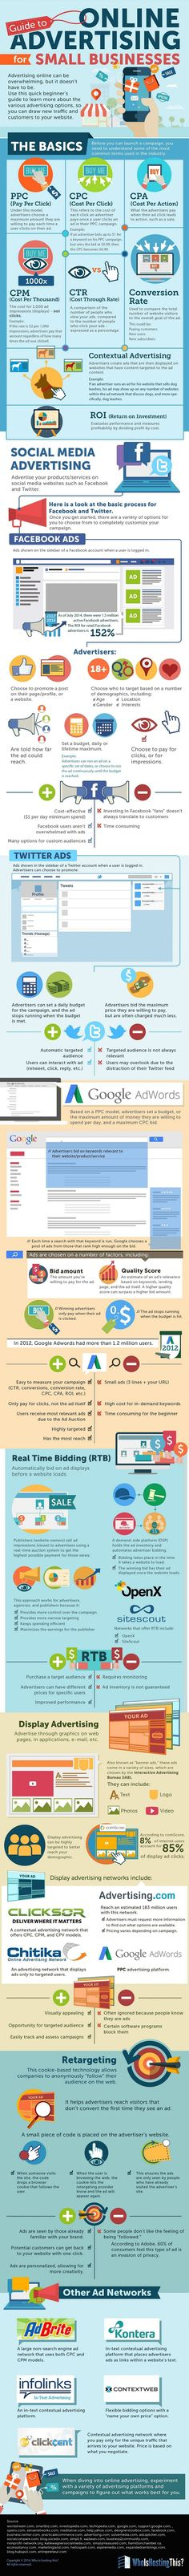 Guide To Online #Advertising For Small Businesses - #infographic